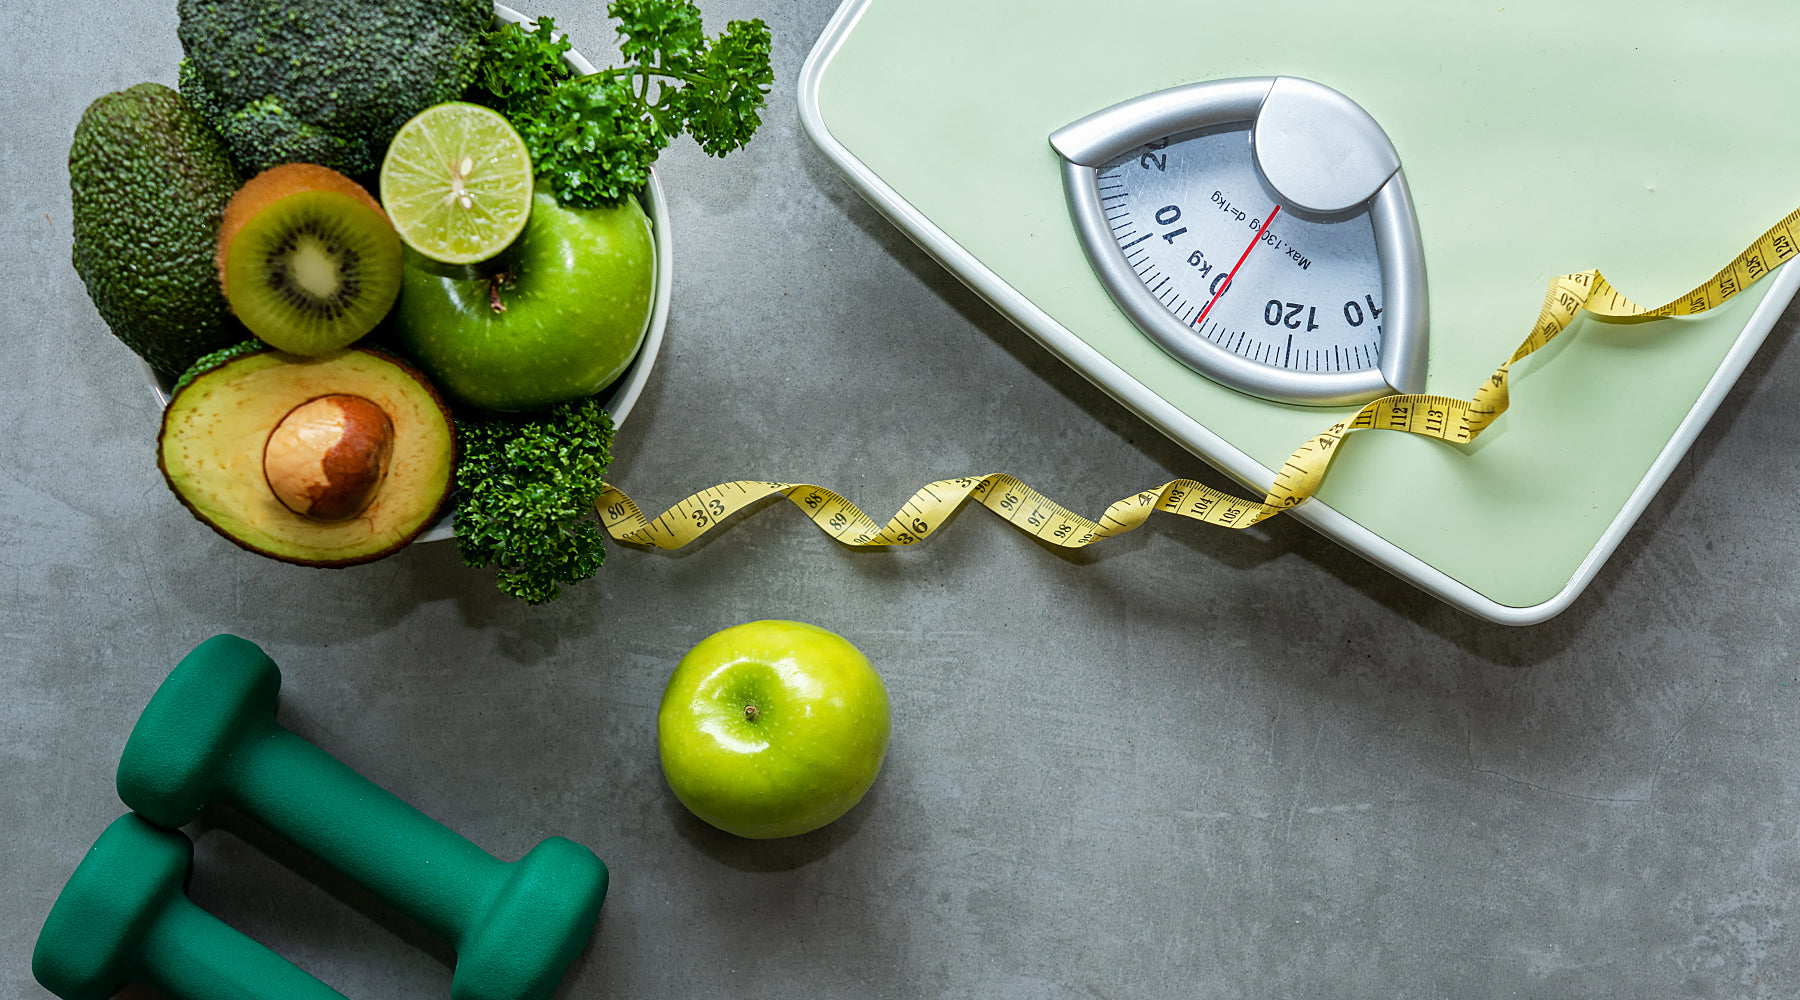 A scale, hand weights and a bowl of healthy foods